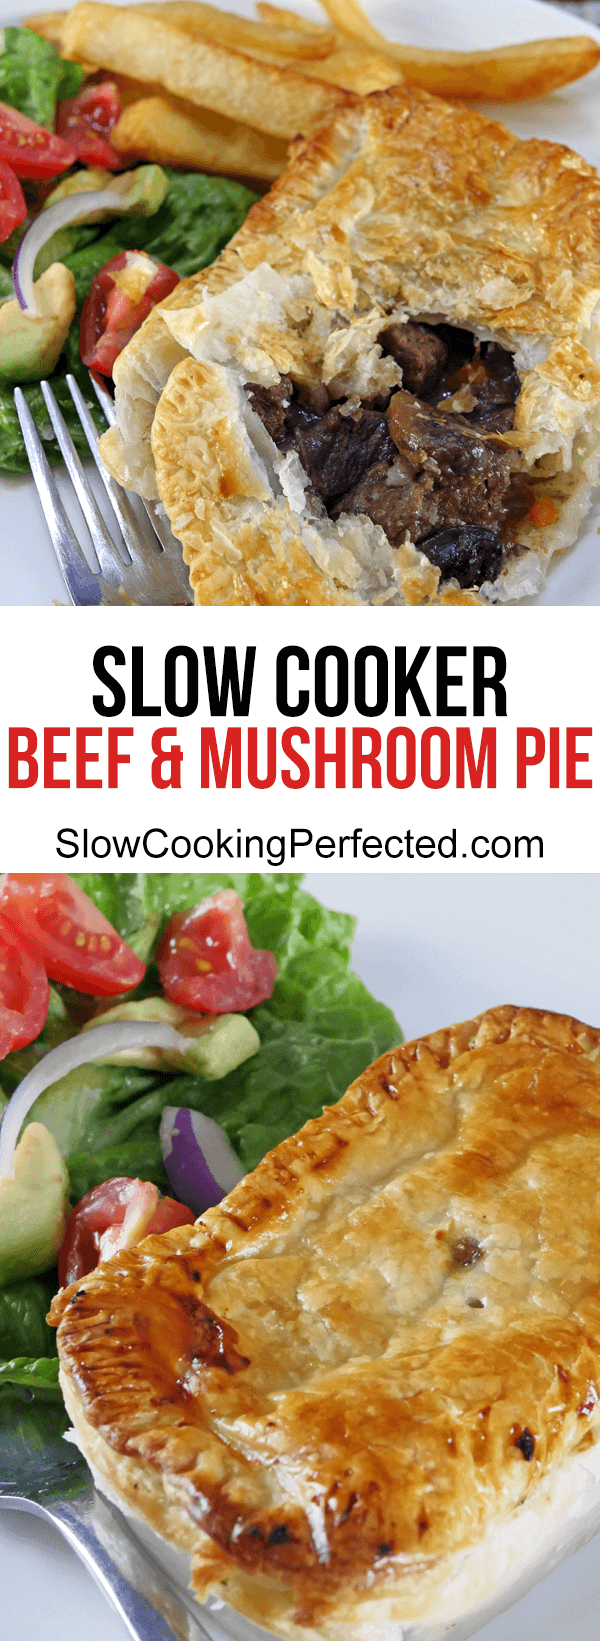 Slow Cooker Beef and Mushroom Pie | Recipe | Beef and ...